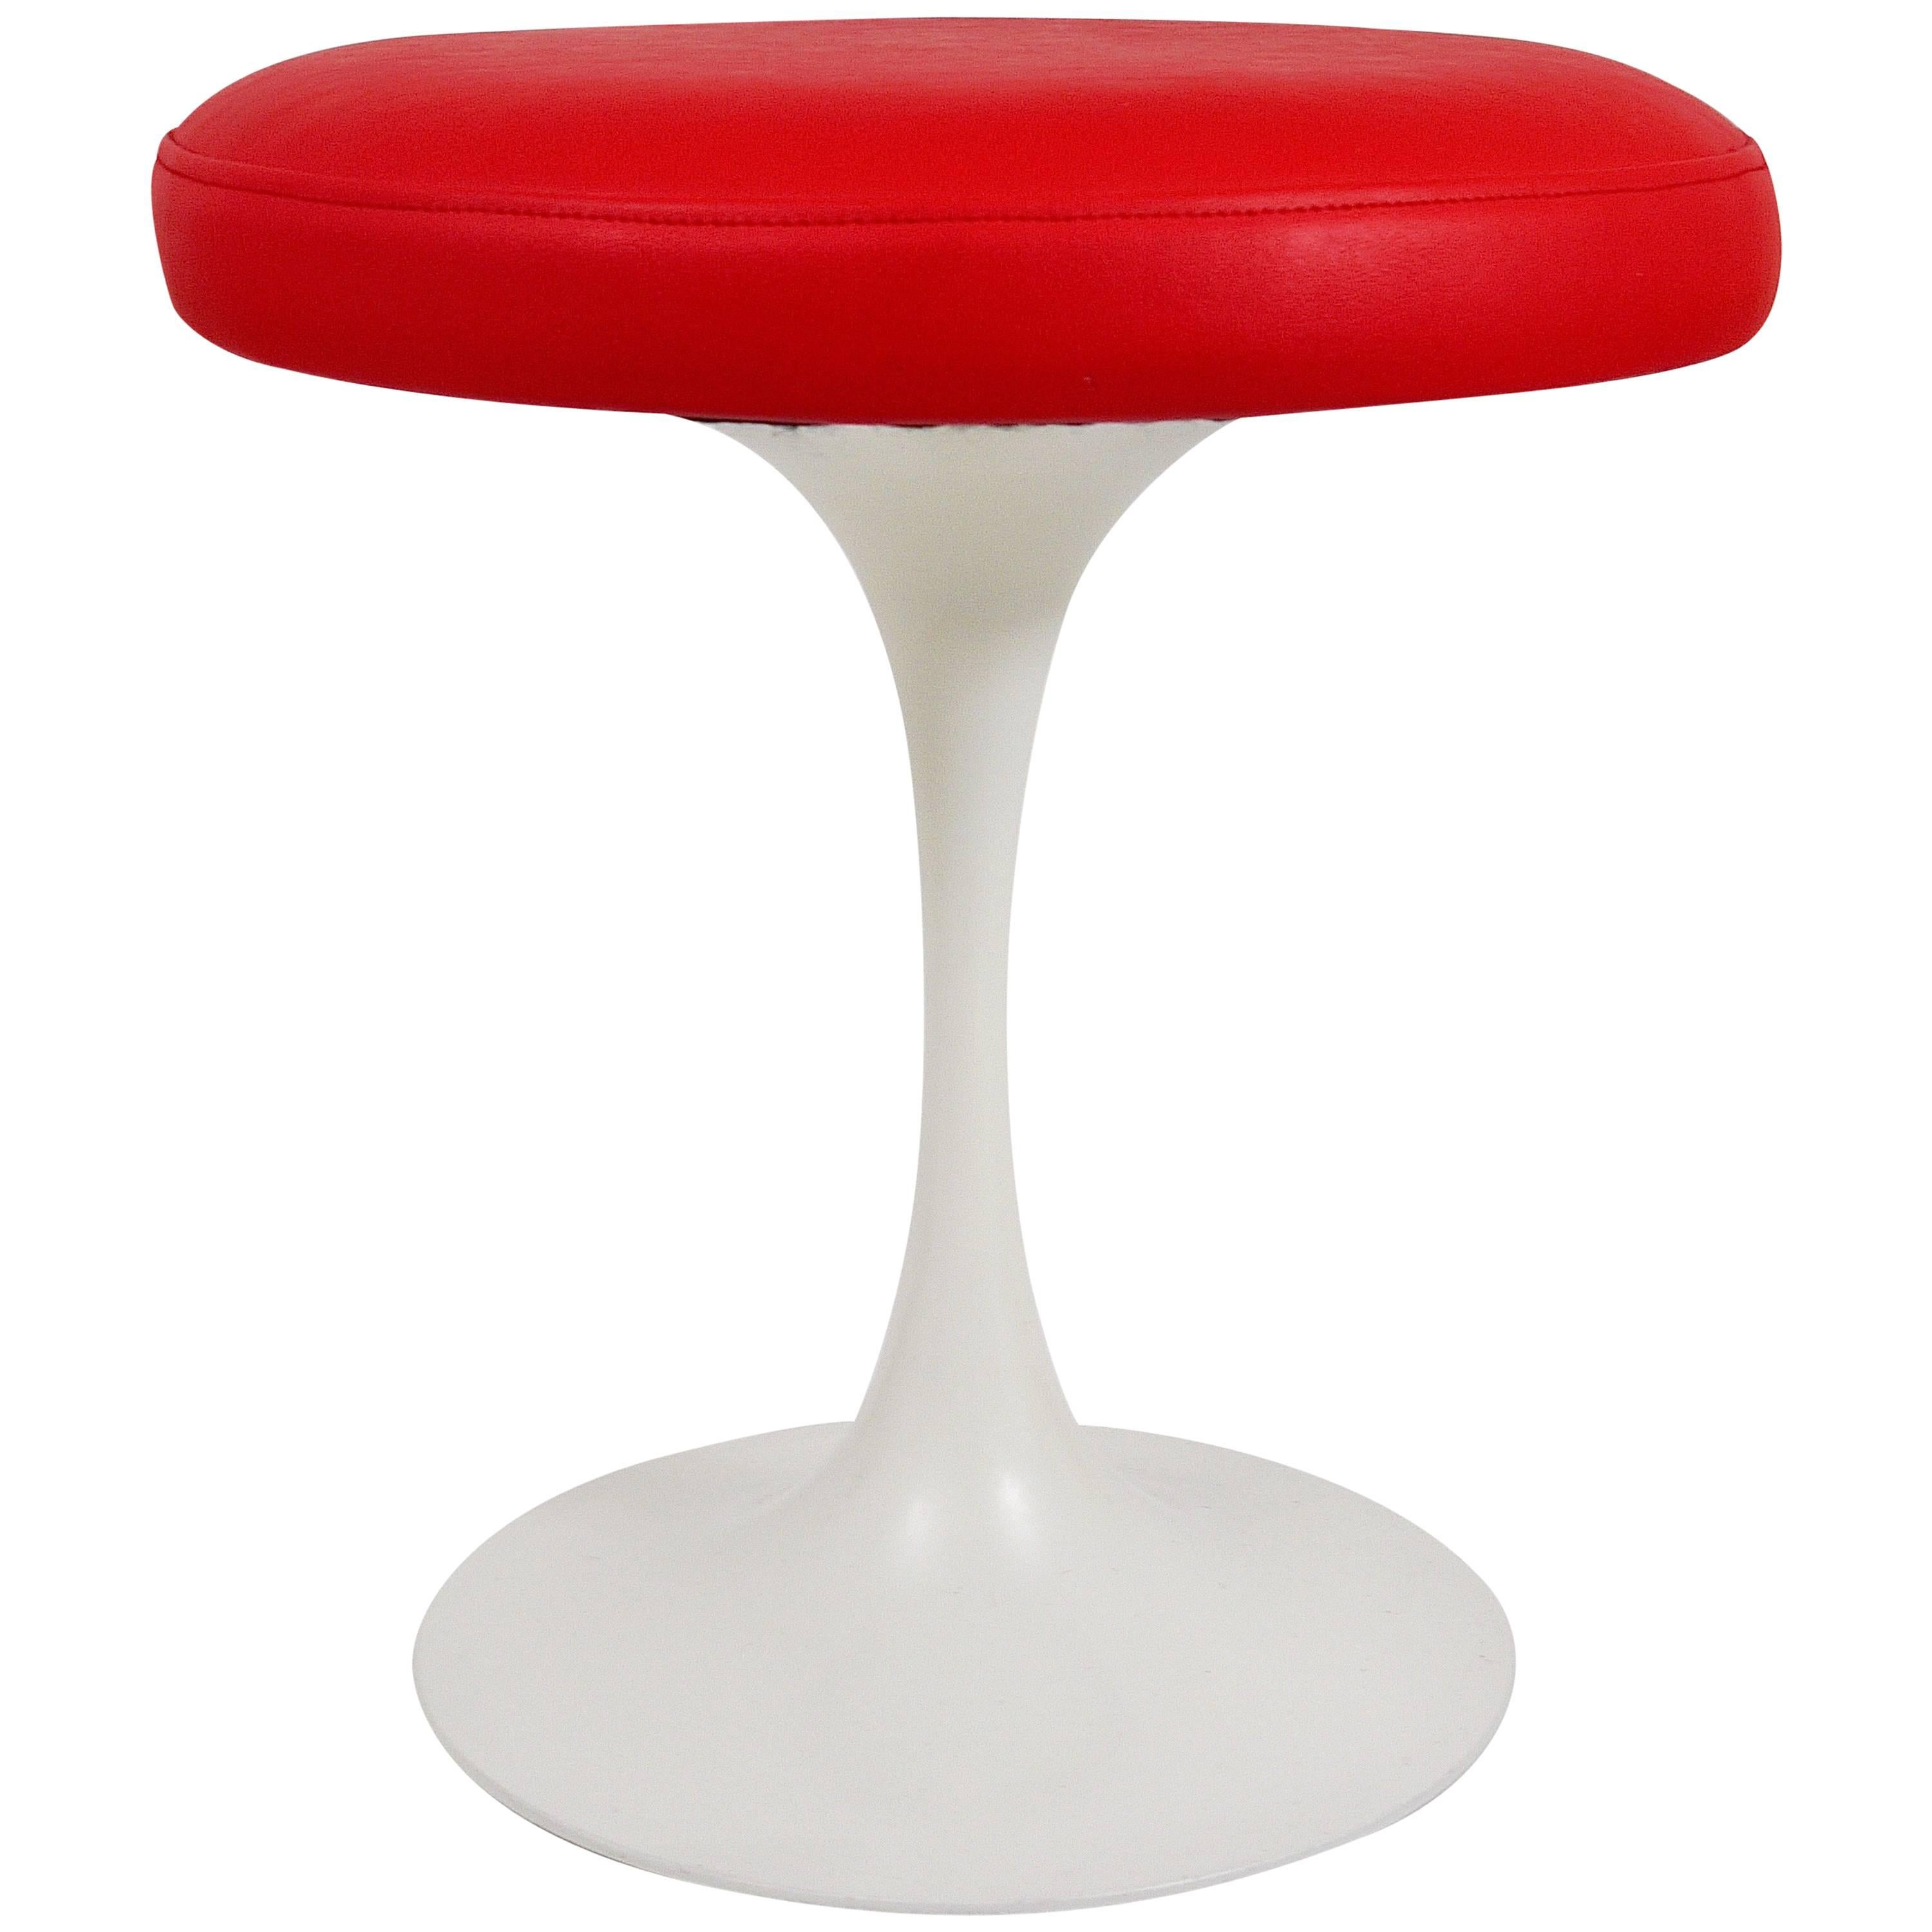 Maurice Burke Red and White Tulip Base Stool by Arkana, United Kingdom, 1960s